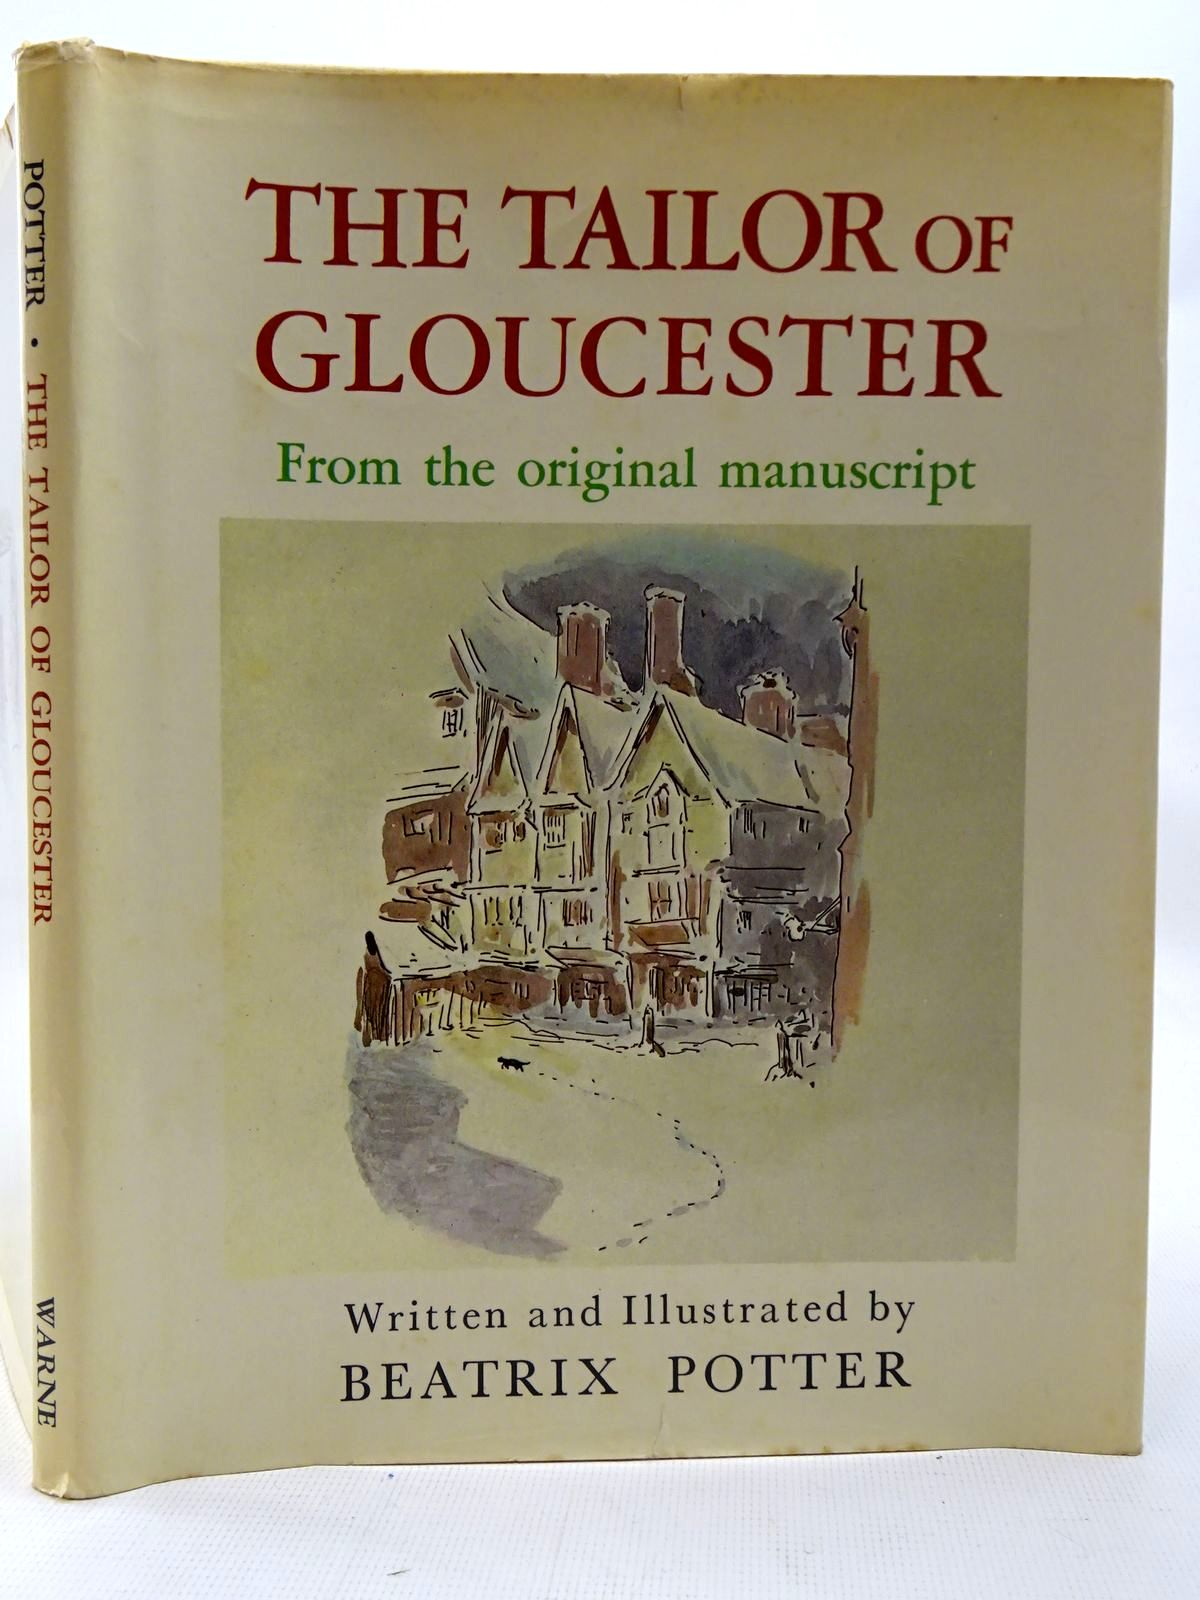 Photo of THE TAILOR OF GLOUCESTER FROM THE ORIGINAL MANUSCRIPT written by Potter, Beatrix illustrated by Potter, Beatrix published by Frederick Warne & Co Ltd. (STOCK CODE: 2126424)  for sale by Stella & Rose's Books